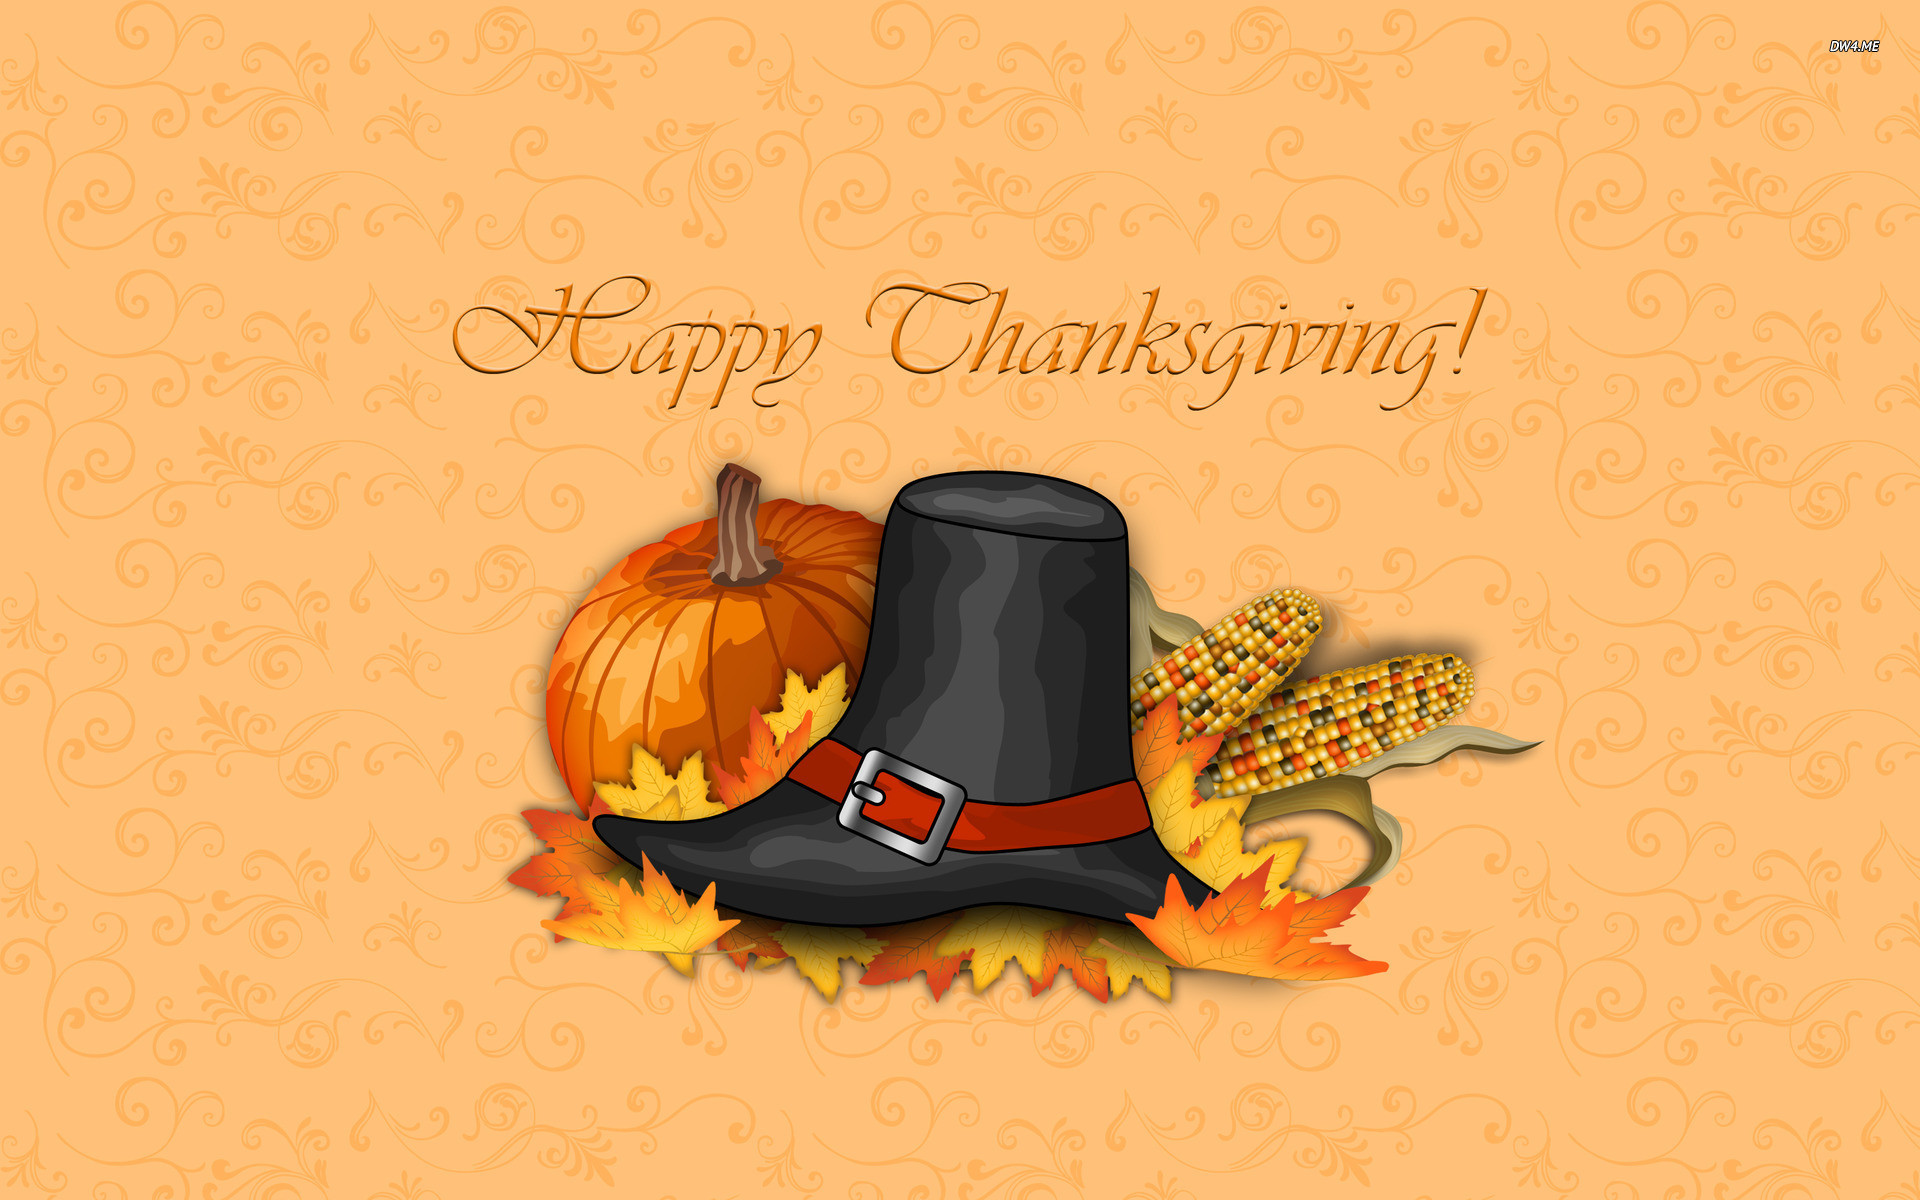 1920x1200 Beautiful Thanksgiving Holiday Wallpapers HQFX